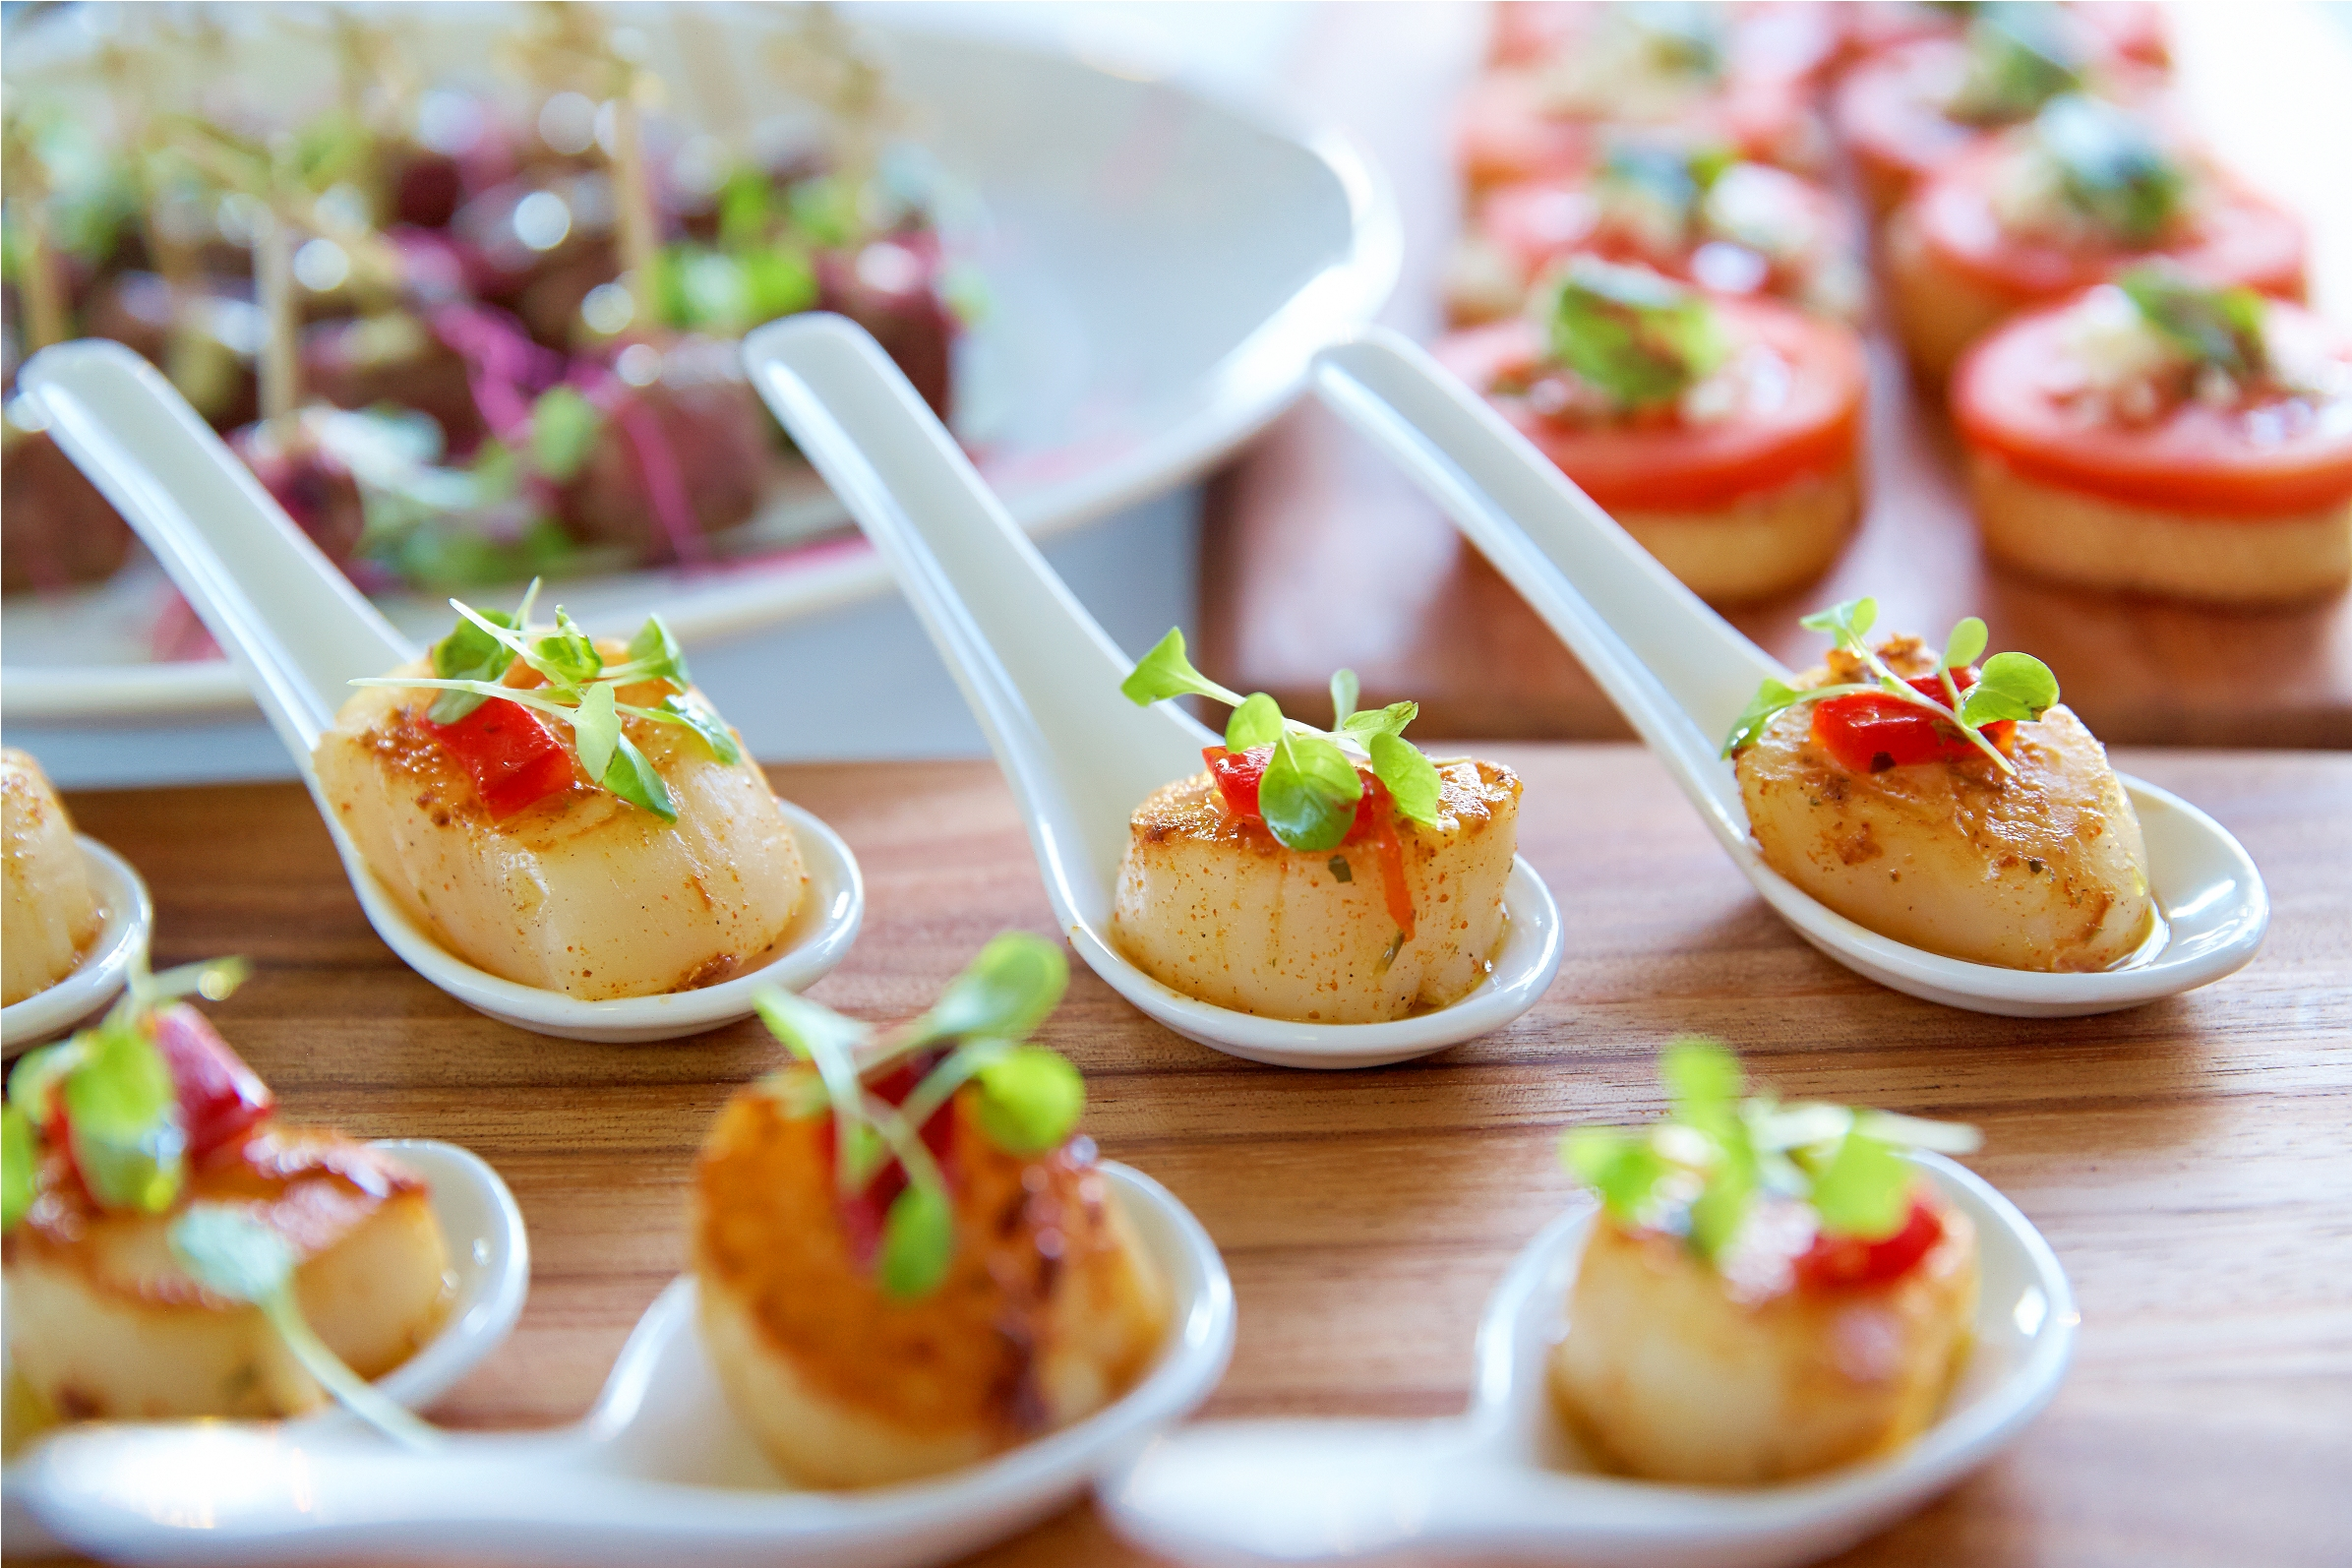 Cajun scallops from the deluxe canape event catering menu at Holiday Inn Potts Point.